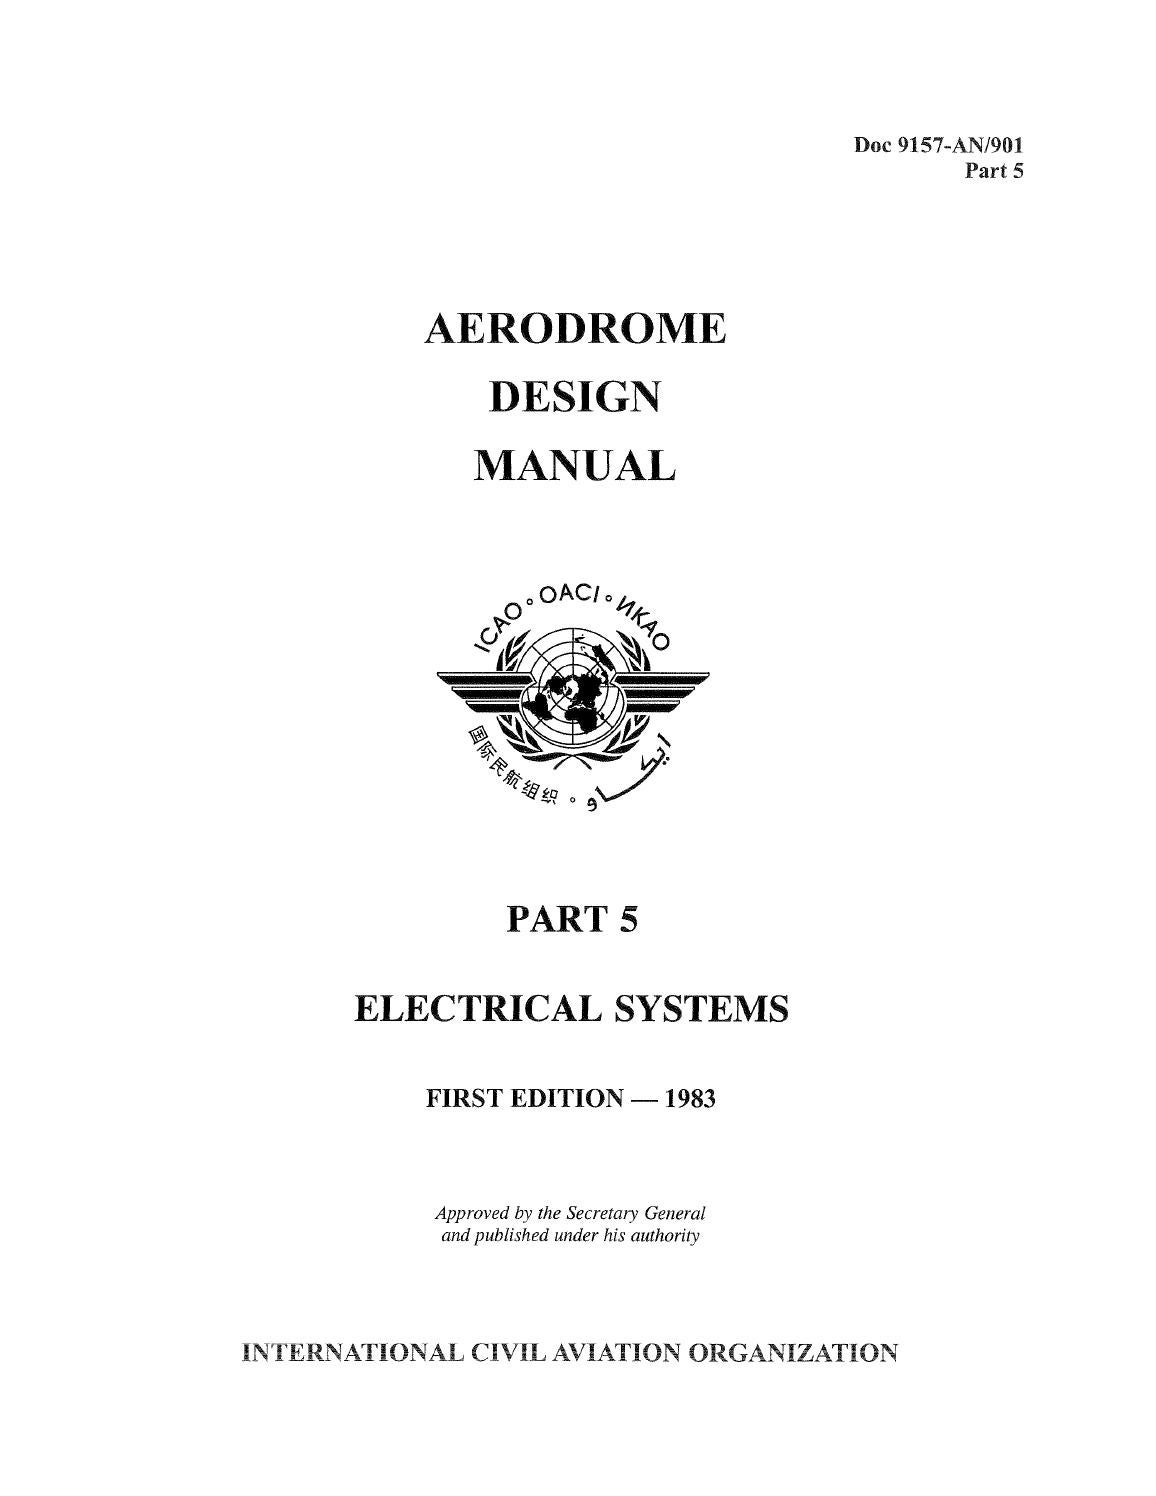 aerodrome design manuel part 5 electrical systems 1983 doc